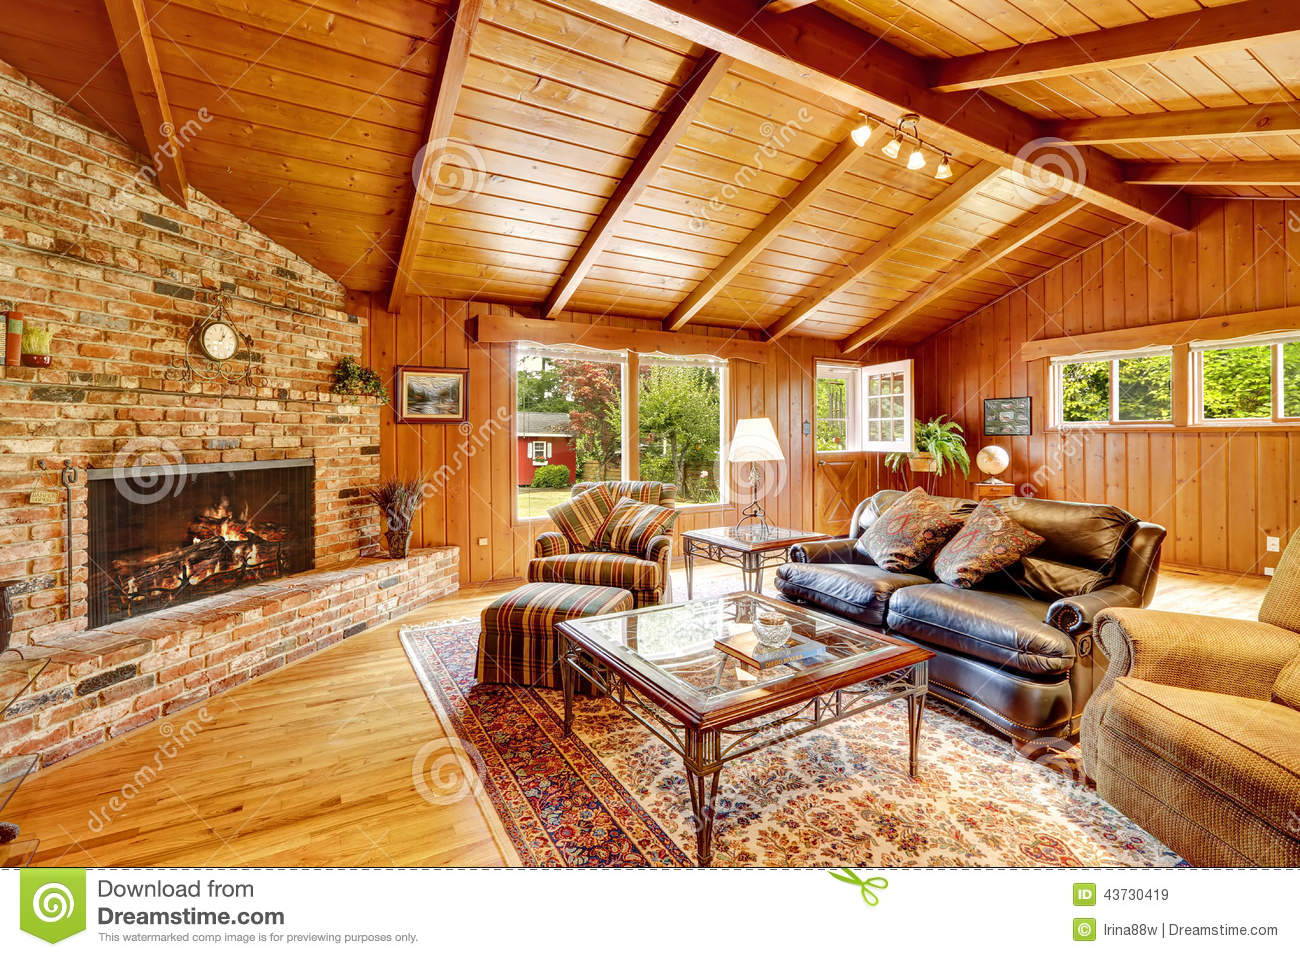 Luxury Log Cabin House Interior Living Room With Fireplace And Stock Photo Image 43730419